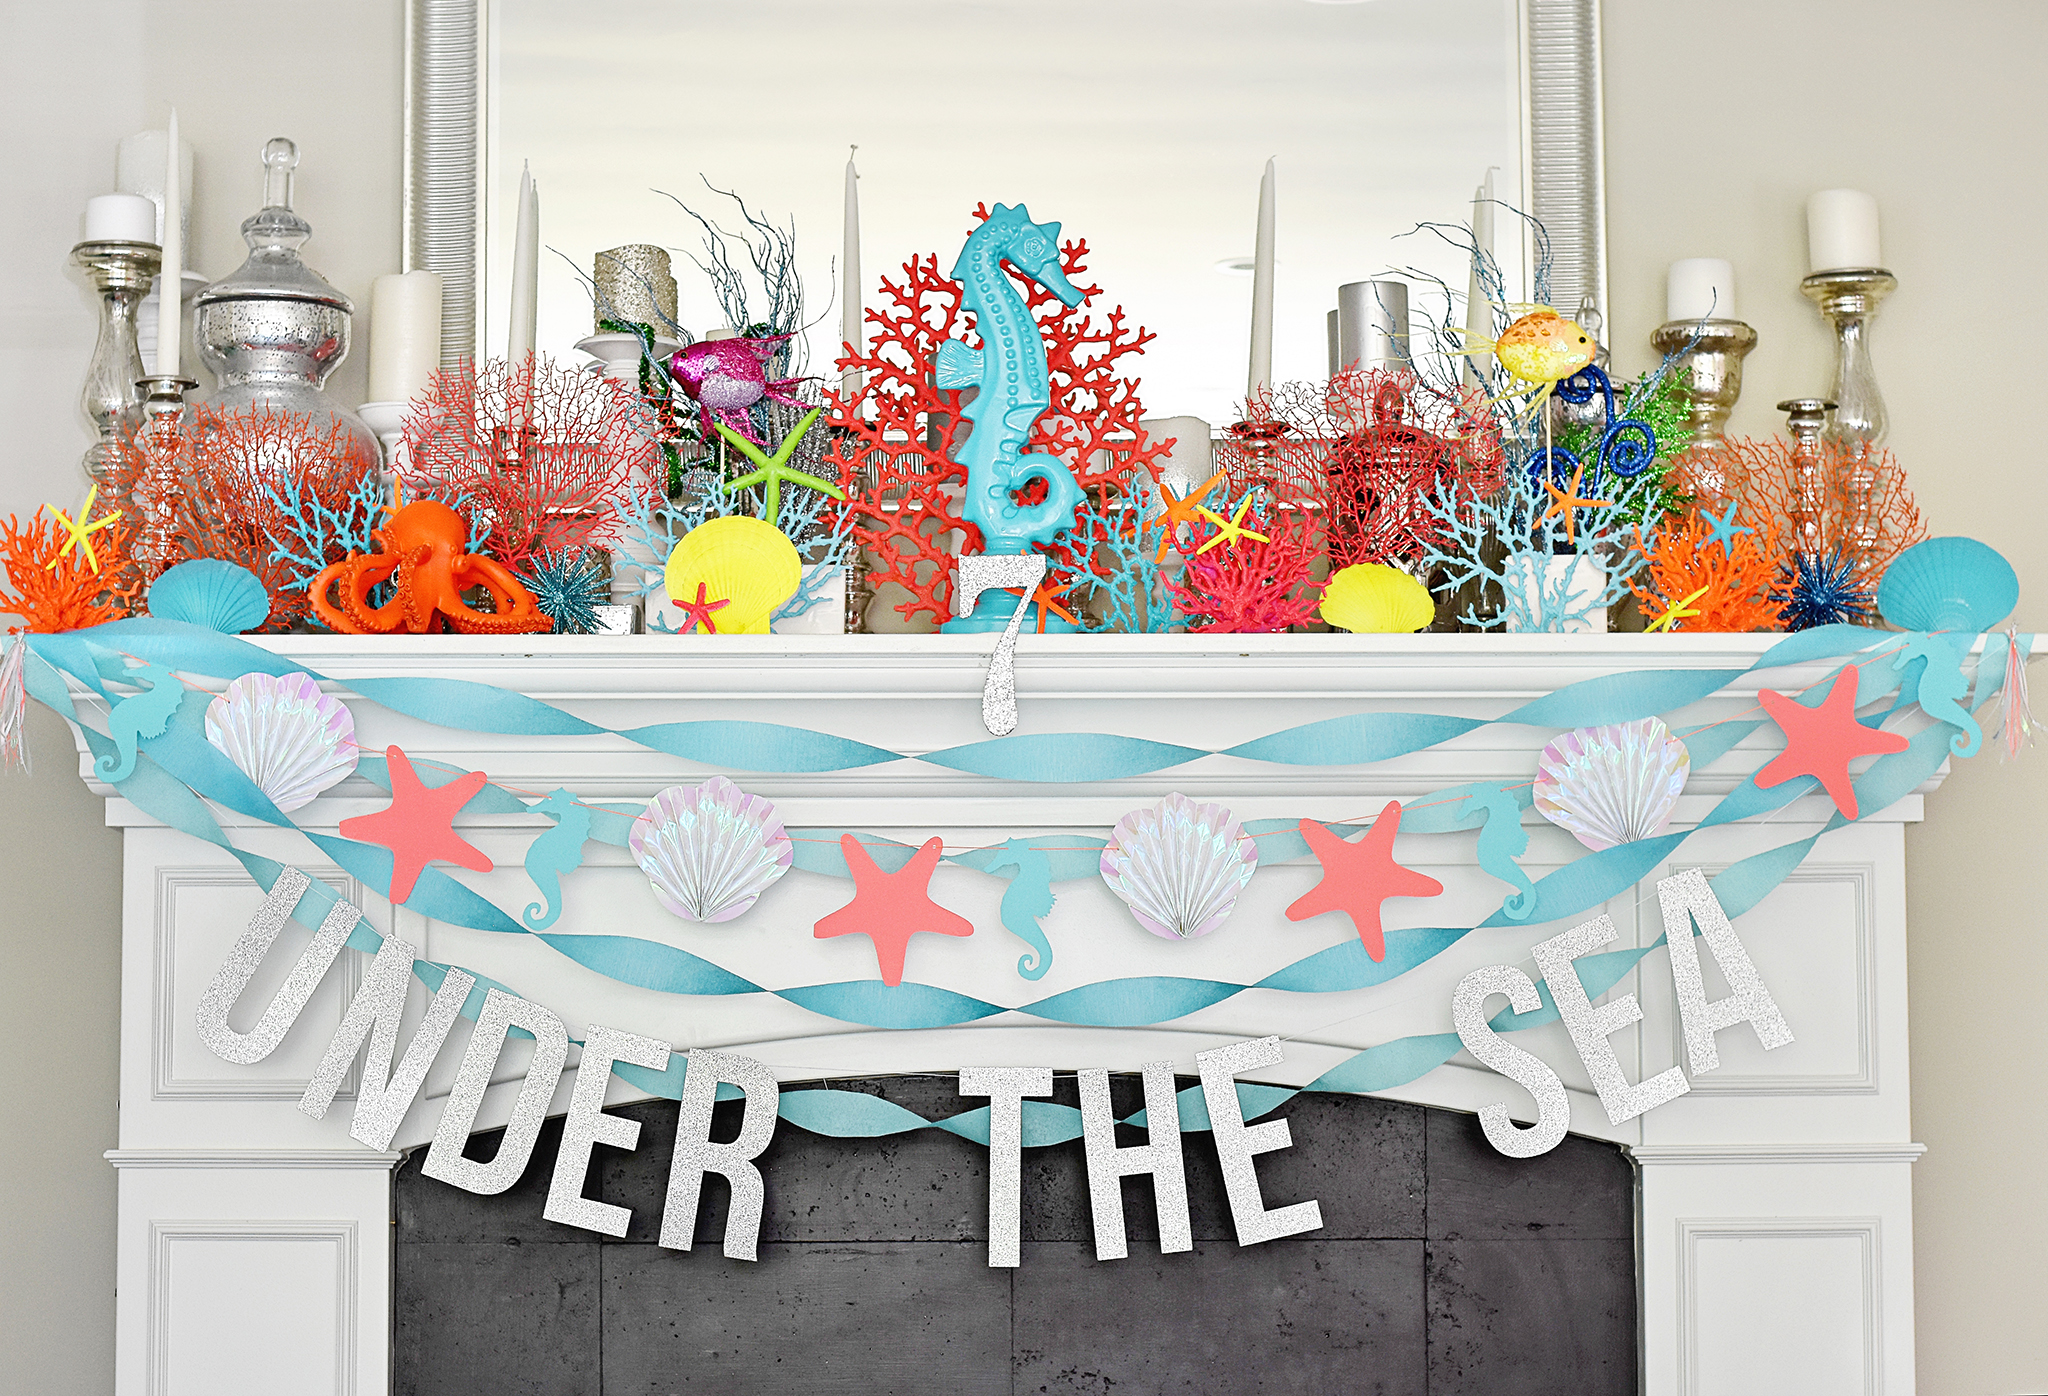 Party decor included neon colored coral and starfish!